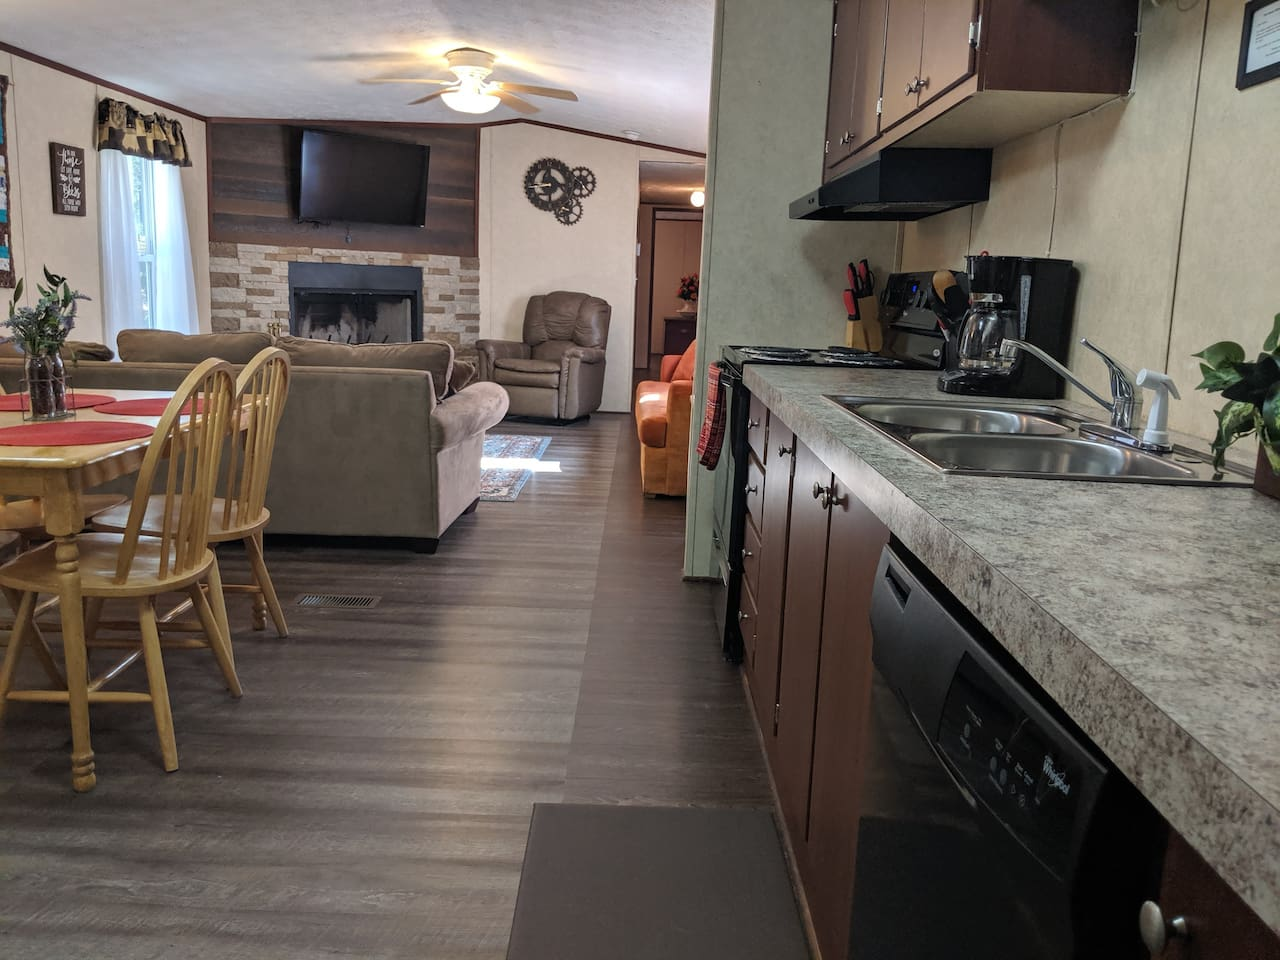 Spacious living area and kitchen with custom fireplace and flooring. Cozy, rustic, and beautifully decorated for your stay.